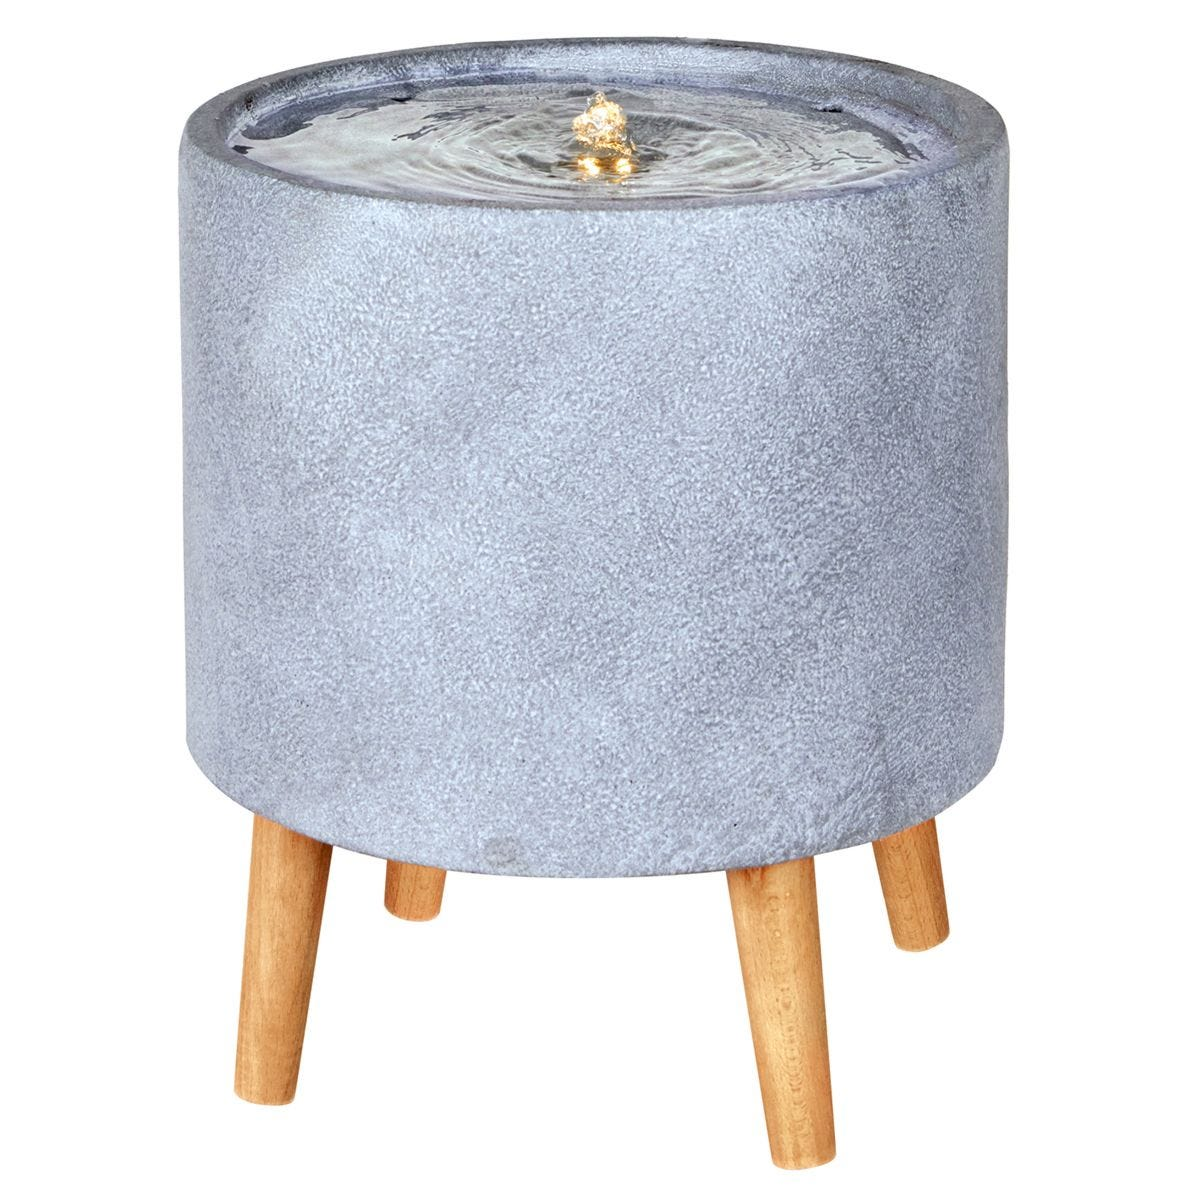 The Outdoor Living Company Circular Contemporary Feature with Legs and LEDs - Grey